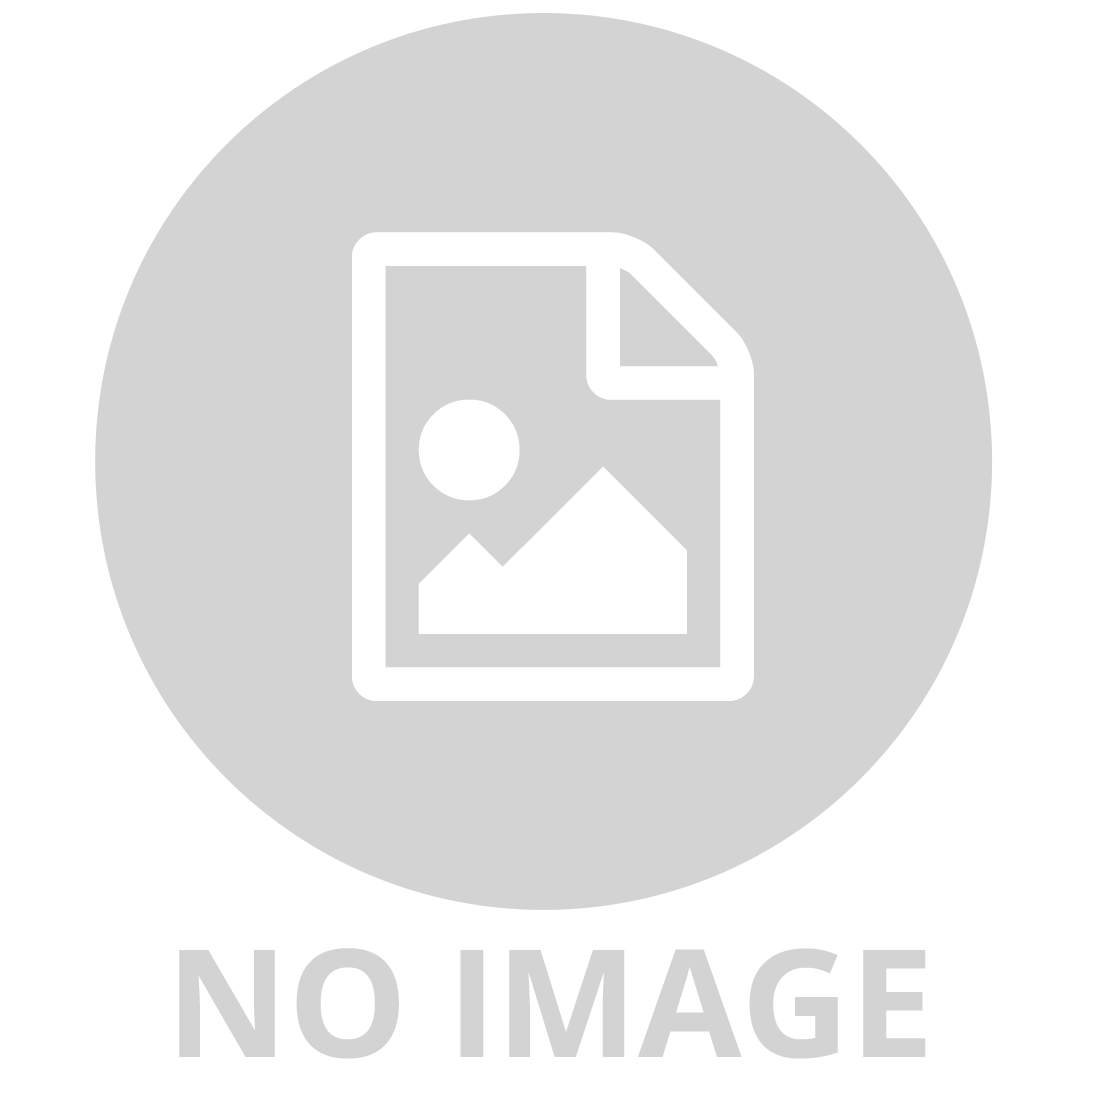 LEAPFROG LEAP READER- LEARN TO READ